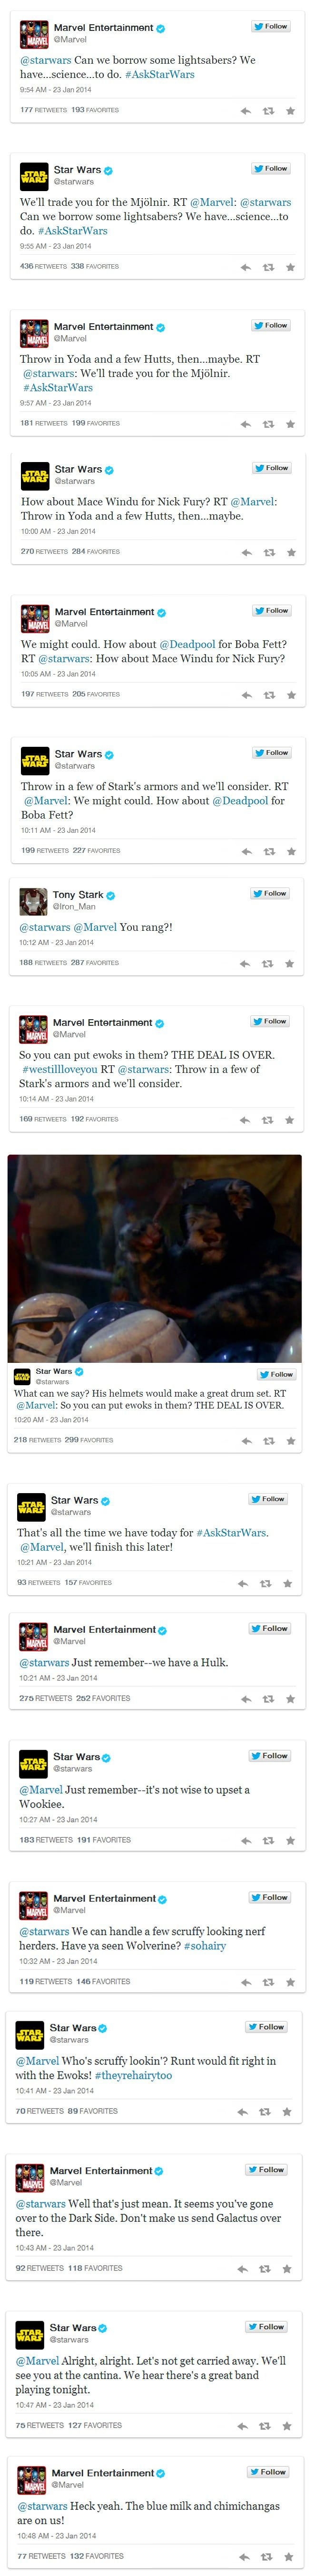 Star Wars and Marvel Just Had the Geekiest Twitter Fight So Far This Year